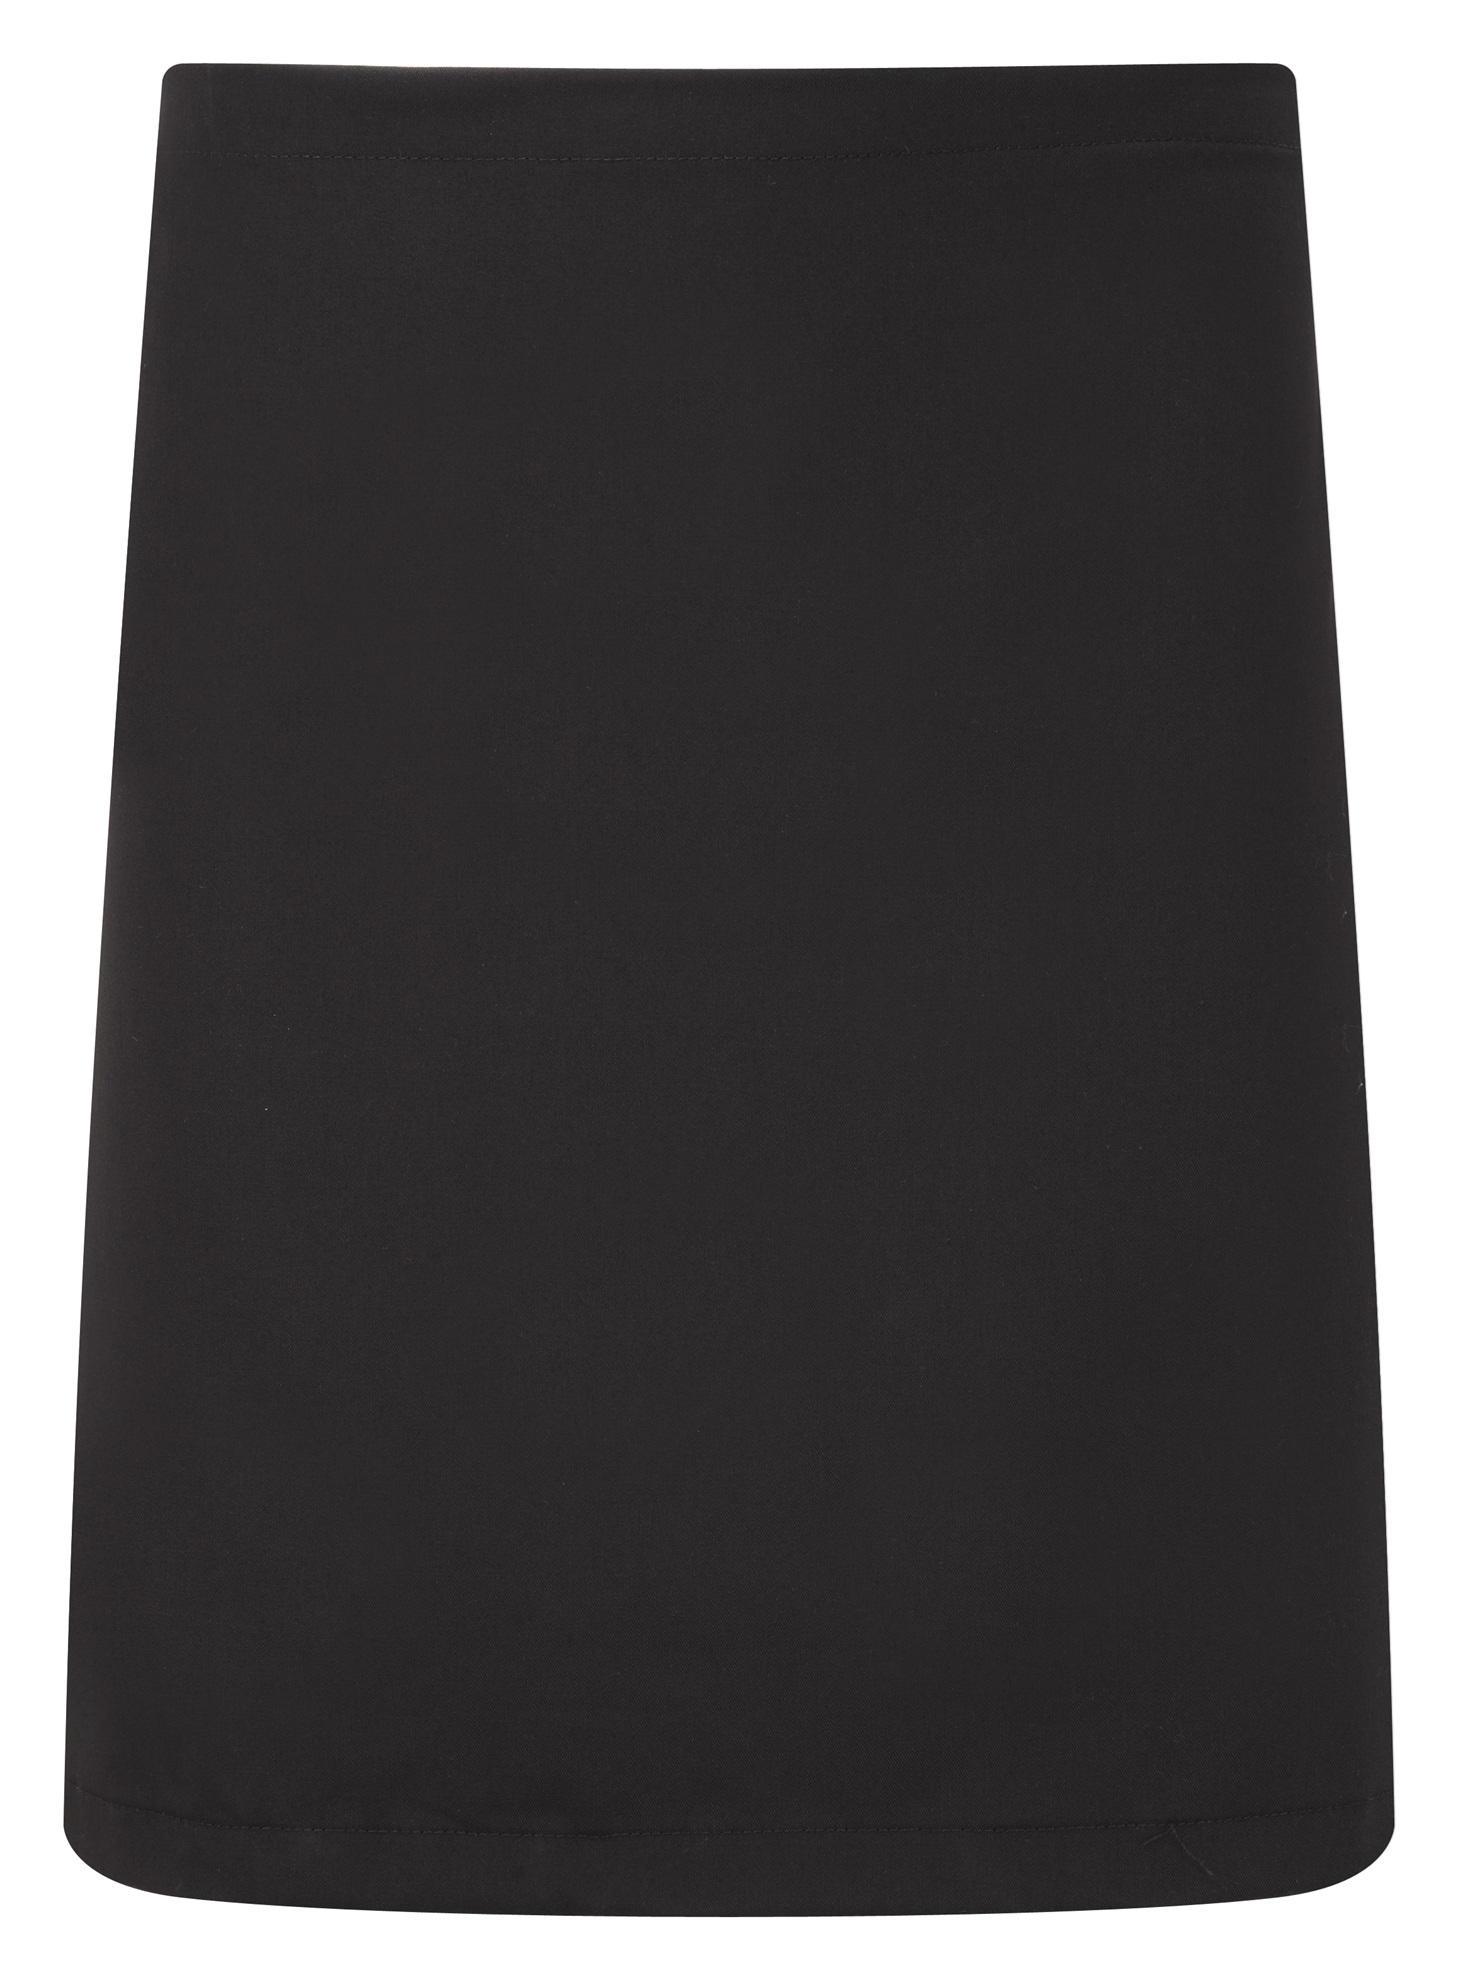 Picture of Chefs short waist apron - Black